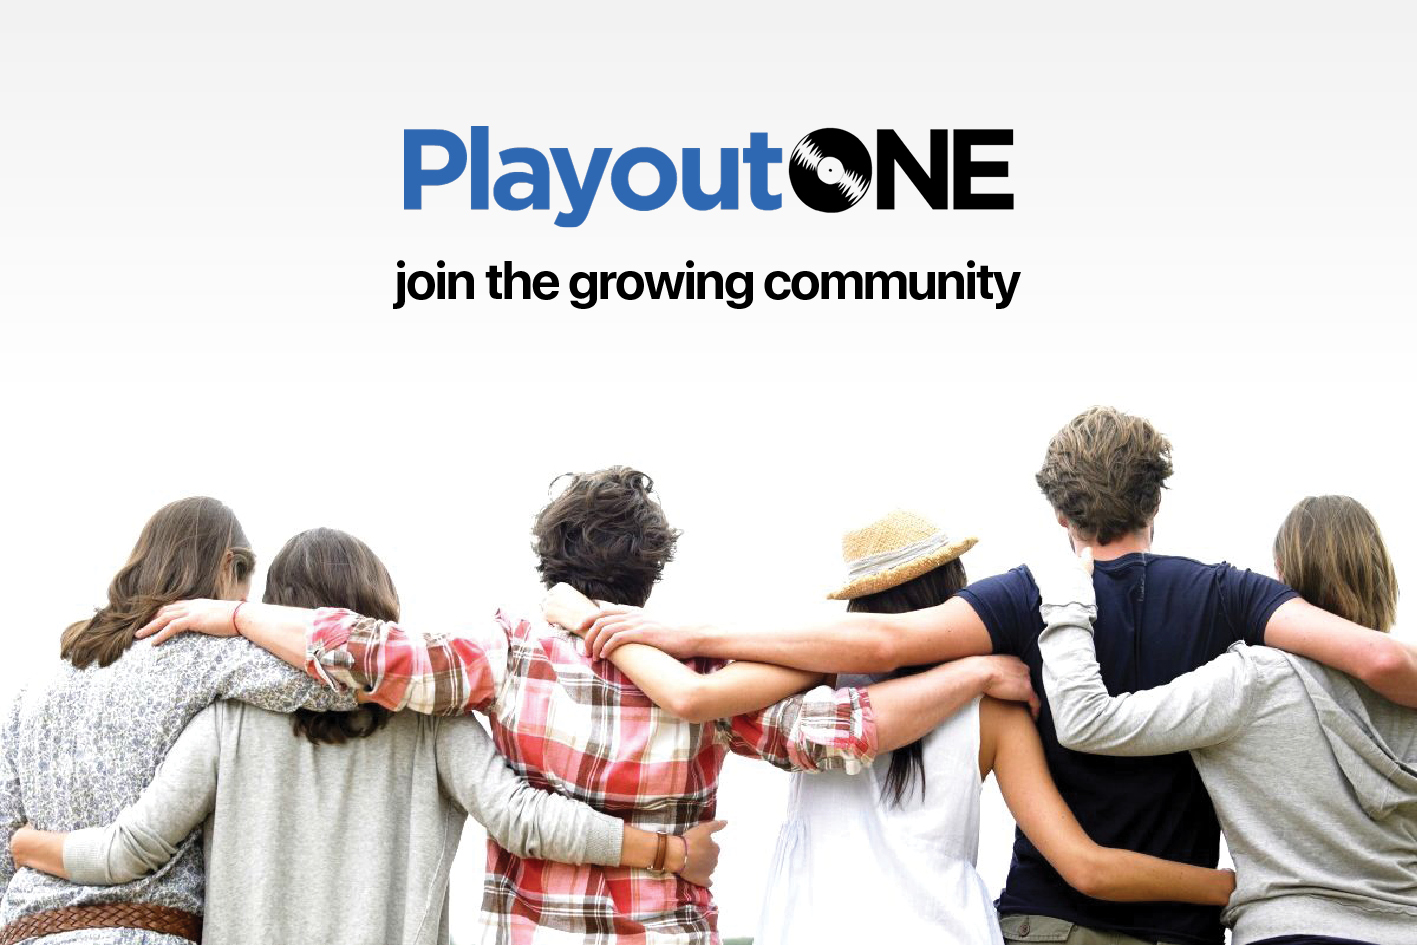 PlayoutONE Join the Growing Community